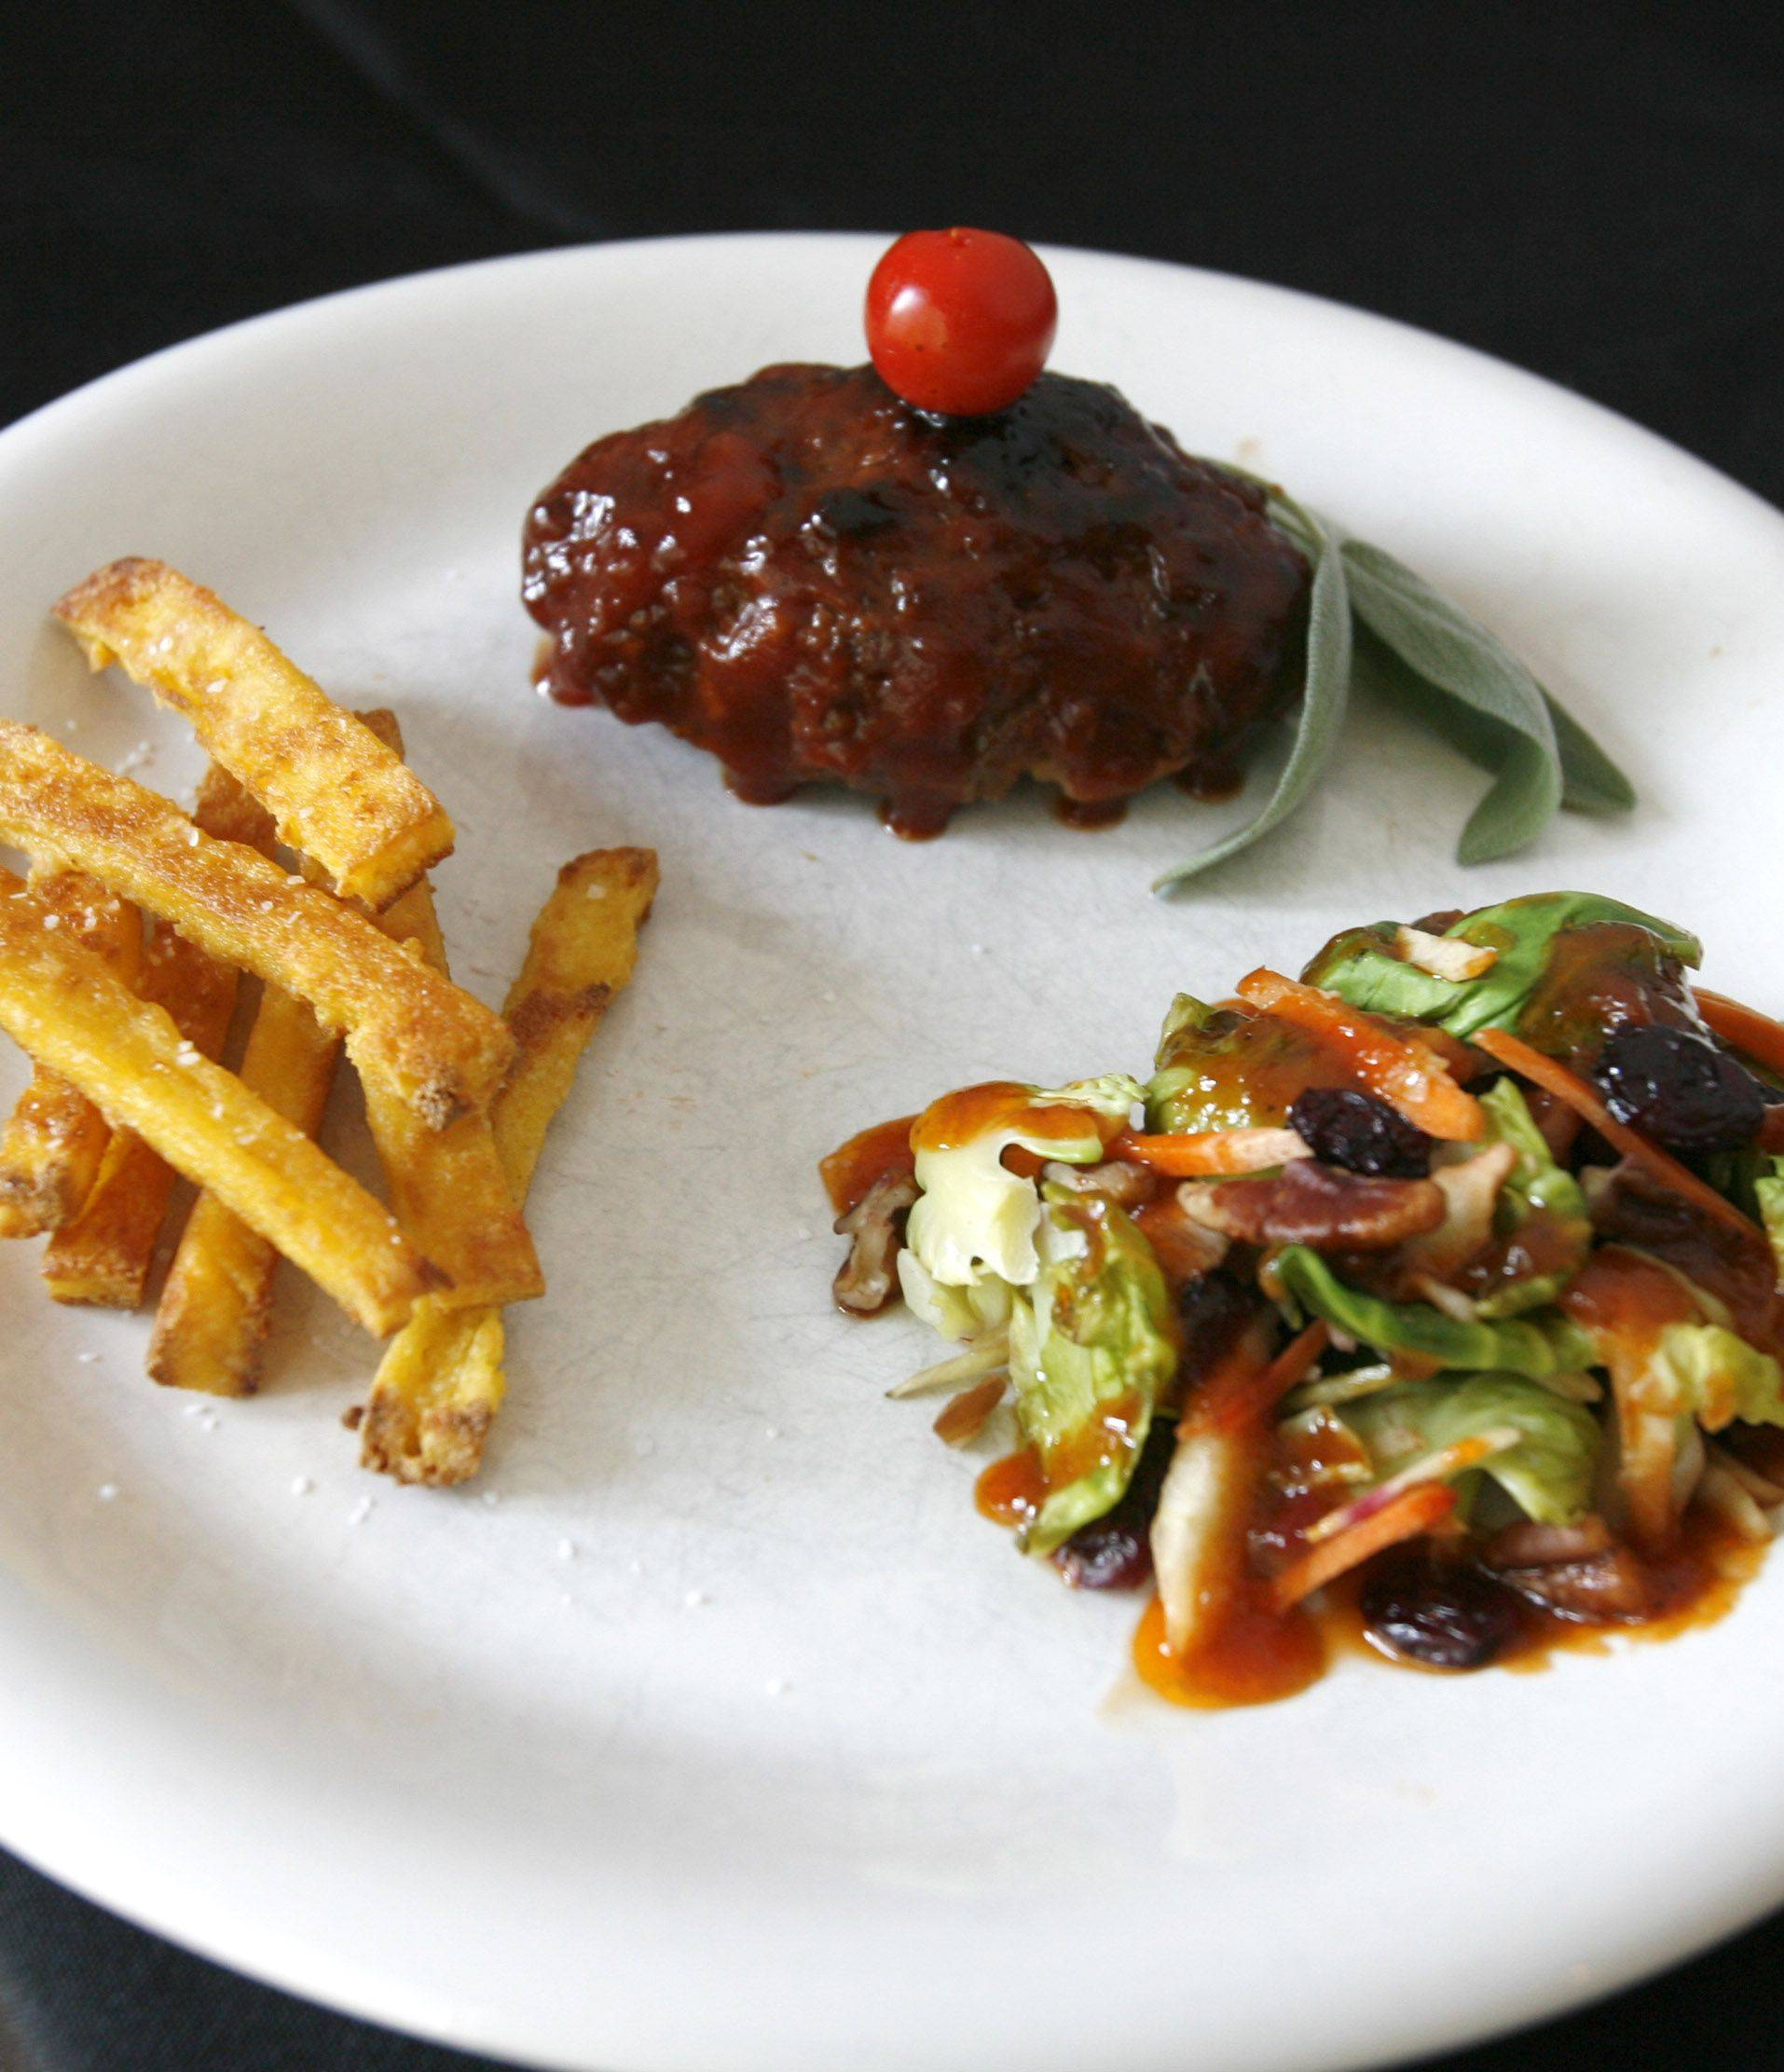 BBQ Meat Loaf with Polenta Fries and Brussels Sprouts Salad with Spicy Dressing